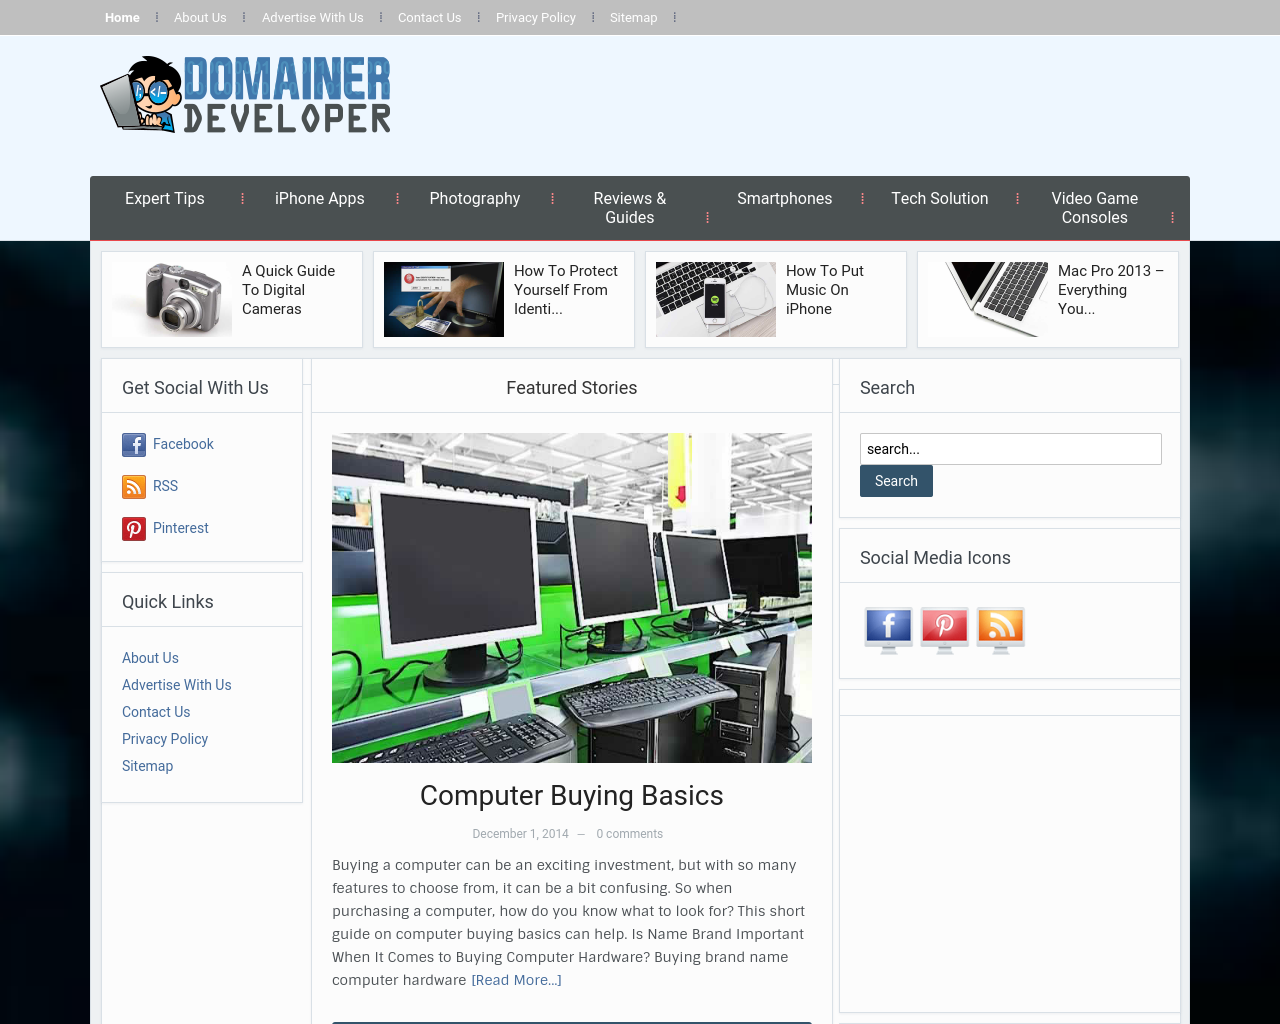 DomainerDeveloper-Advertising-Reviews-Pricing